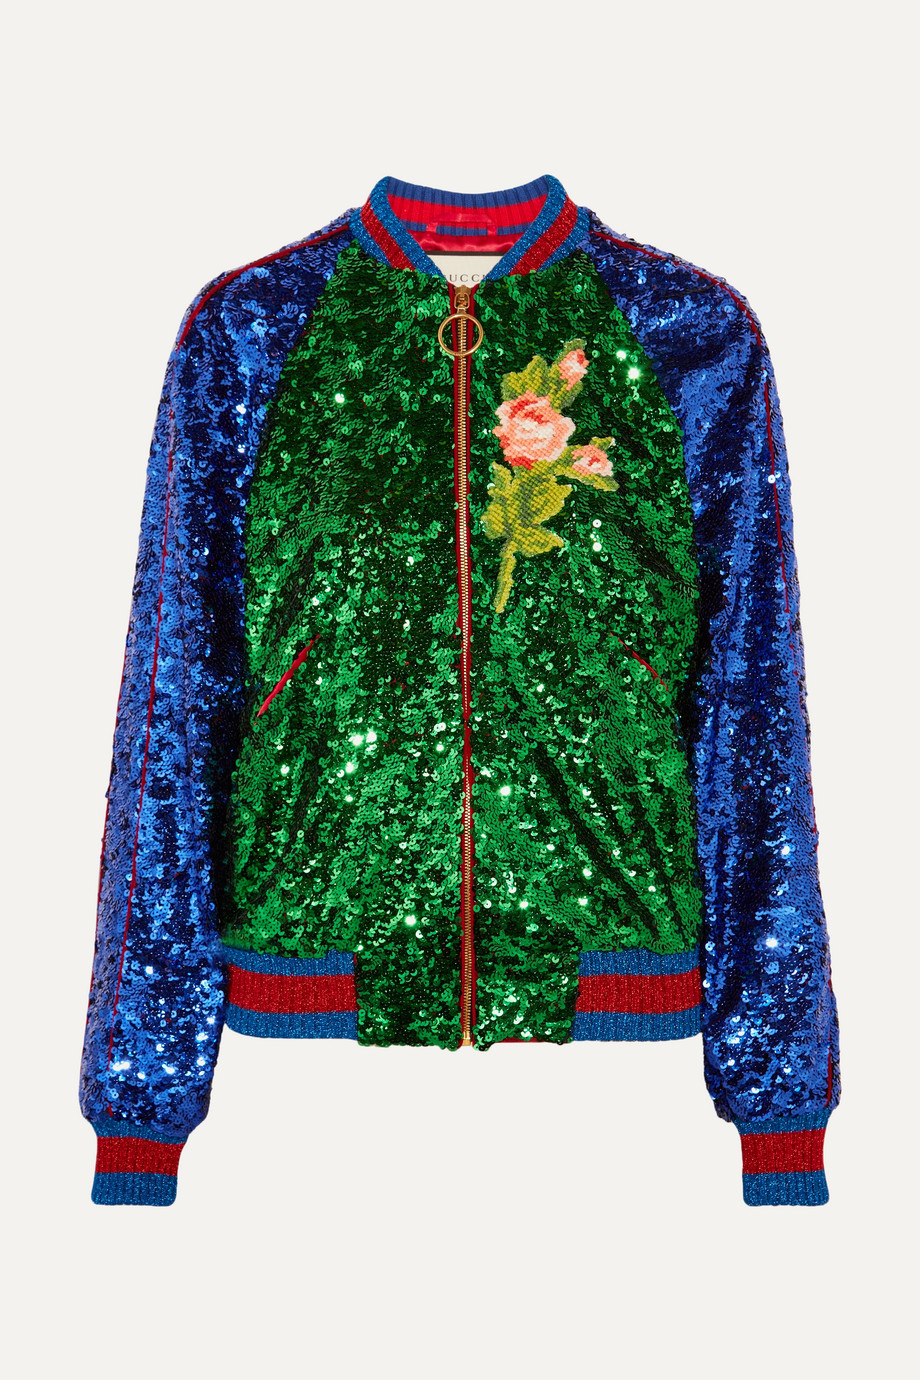 Gucci Appliquéd sequined tulle and satin bomber jacket